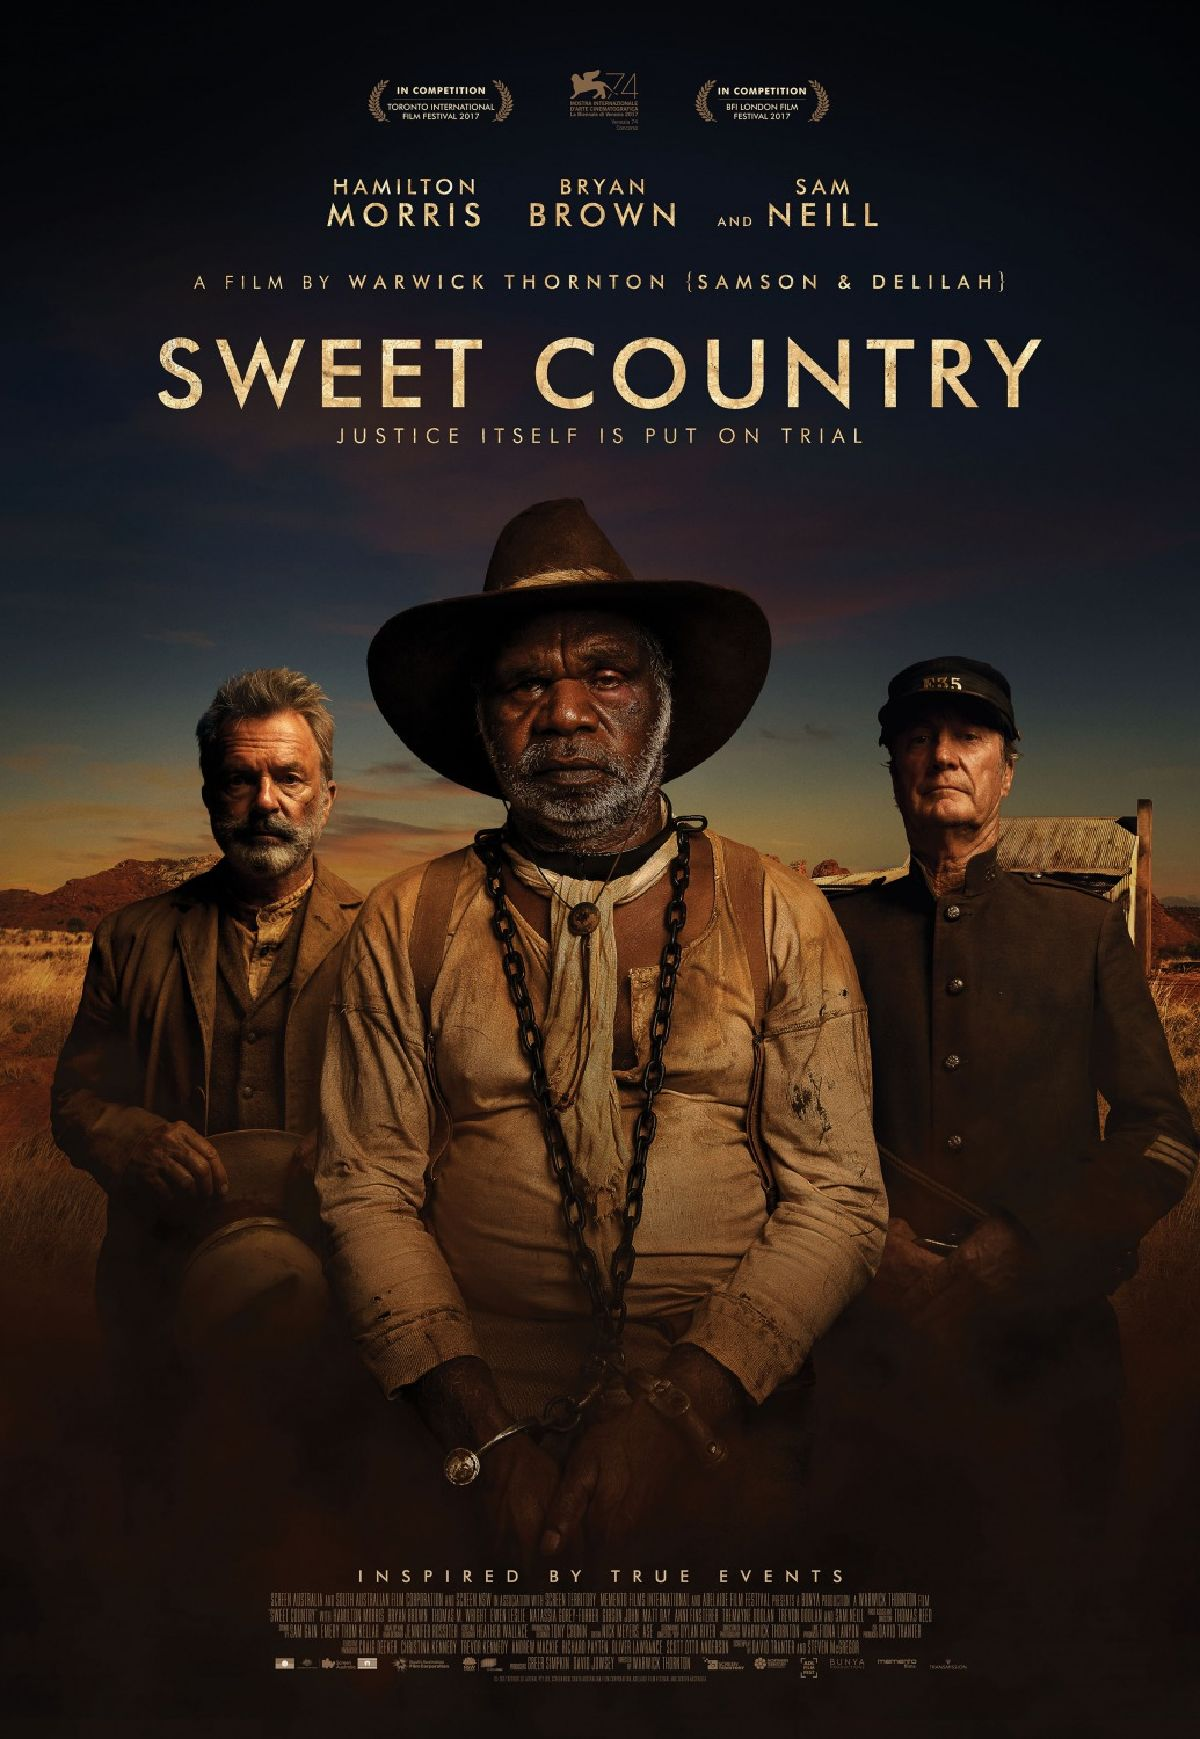 'Sweet Country' movie poster